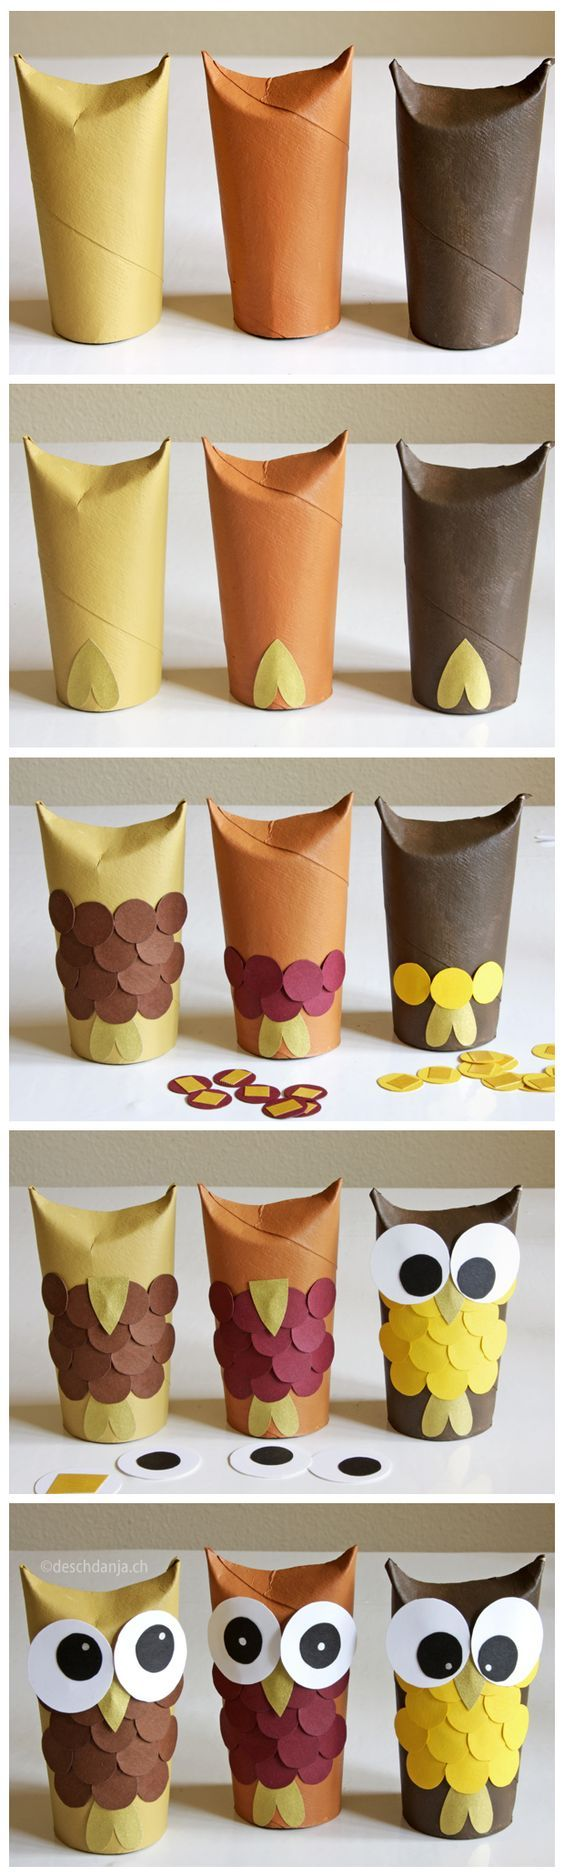 cute paper owls: paper rolls, acrylic color, paper, glue and tape. www.deschdanja.ch::